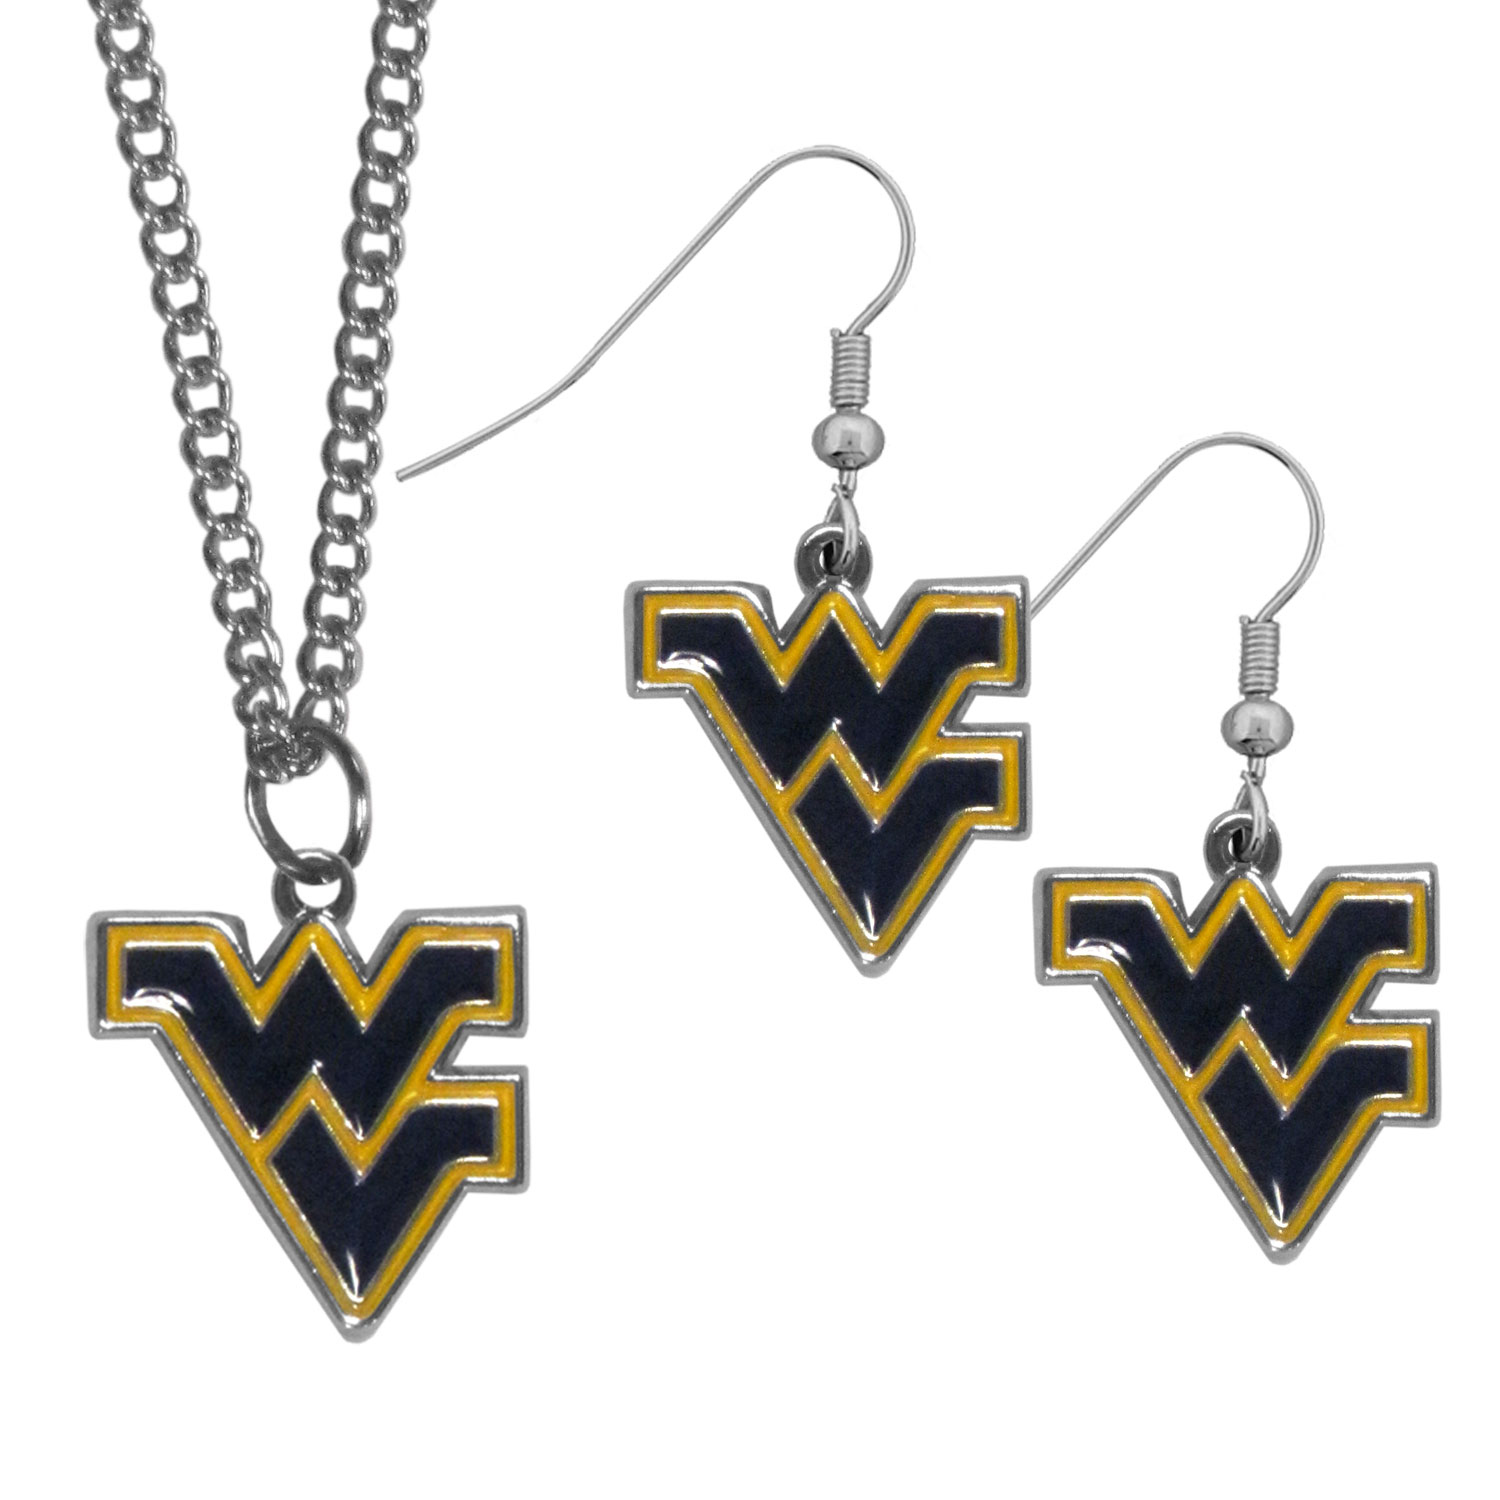 W. Virginia Mountaineers Dangle Earrings and Chain Necklace Set - This classic jewelry set contains are most popular W. Virginia Mountaineers dangle earrings and 22 inch chain necklace. The trendy, dangle earrings are lightweight and feature a fully cast metal team charm with enameled team colors. The matching necklace completes this fashion forward combo and is a spirited set that is perfect for game day but nice enough for everyday.